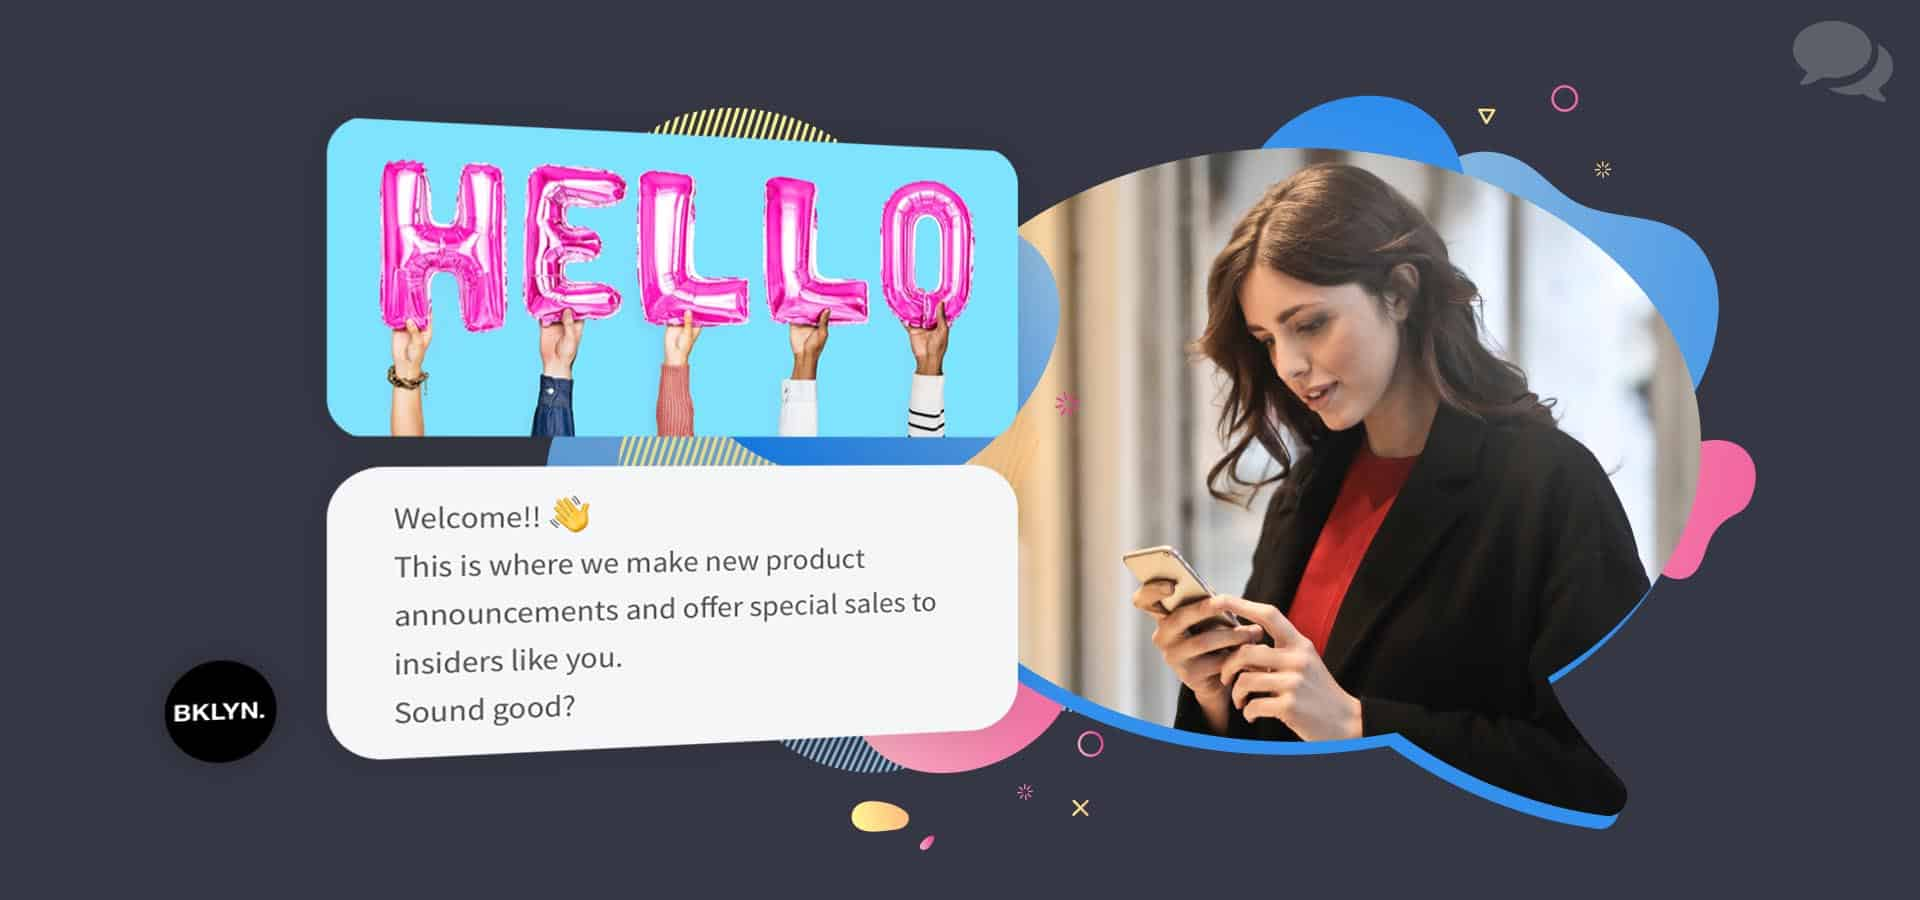 "A brunette woman wearing red and black looks down at her rose gold cell phone. Next to her is a floating conversation from Messenger. The first message is an image of five hands holding five pink balloons that spell out ""Hello"". The second message says ""Welcome!! (Hand-waving emoji) This is where we make new product announcements and offer special sales to insiders like you. Sound good?"" The messages are from a brand named Brooklyn."